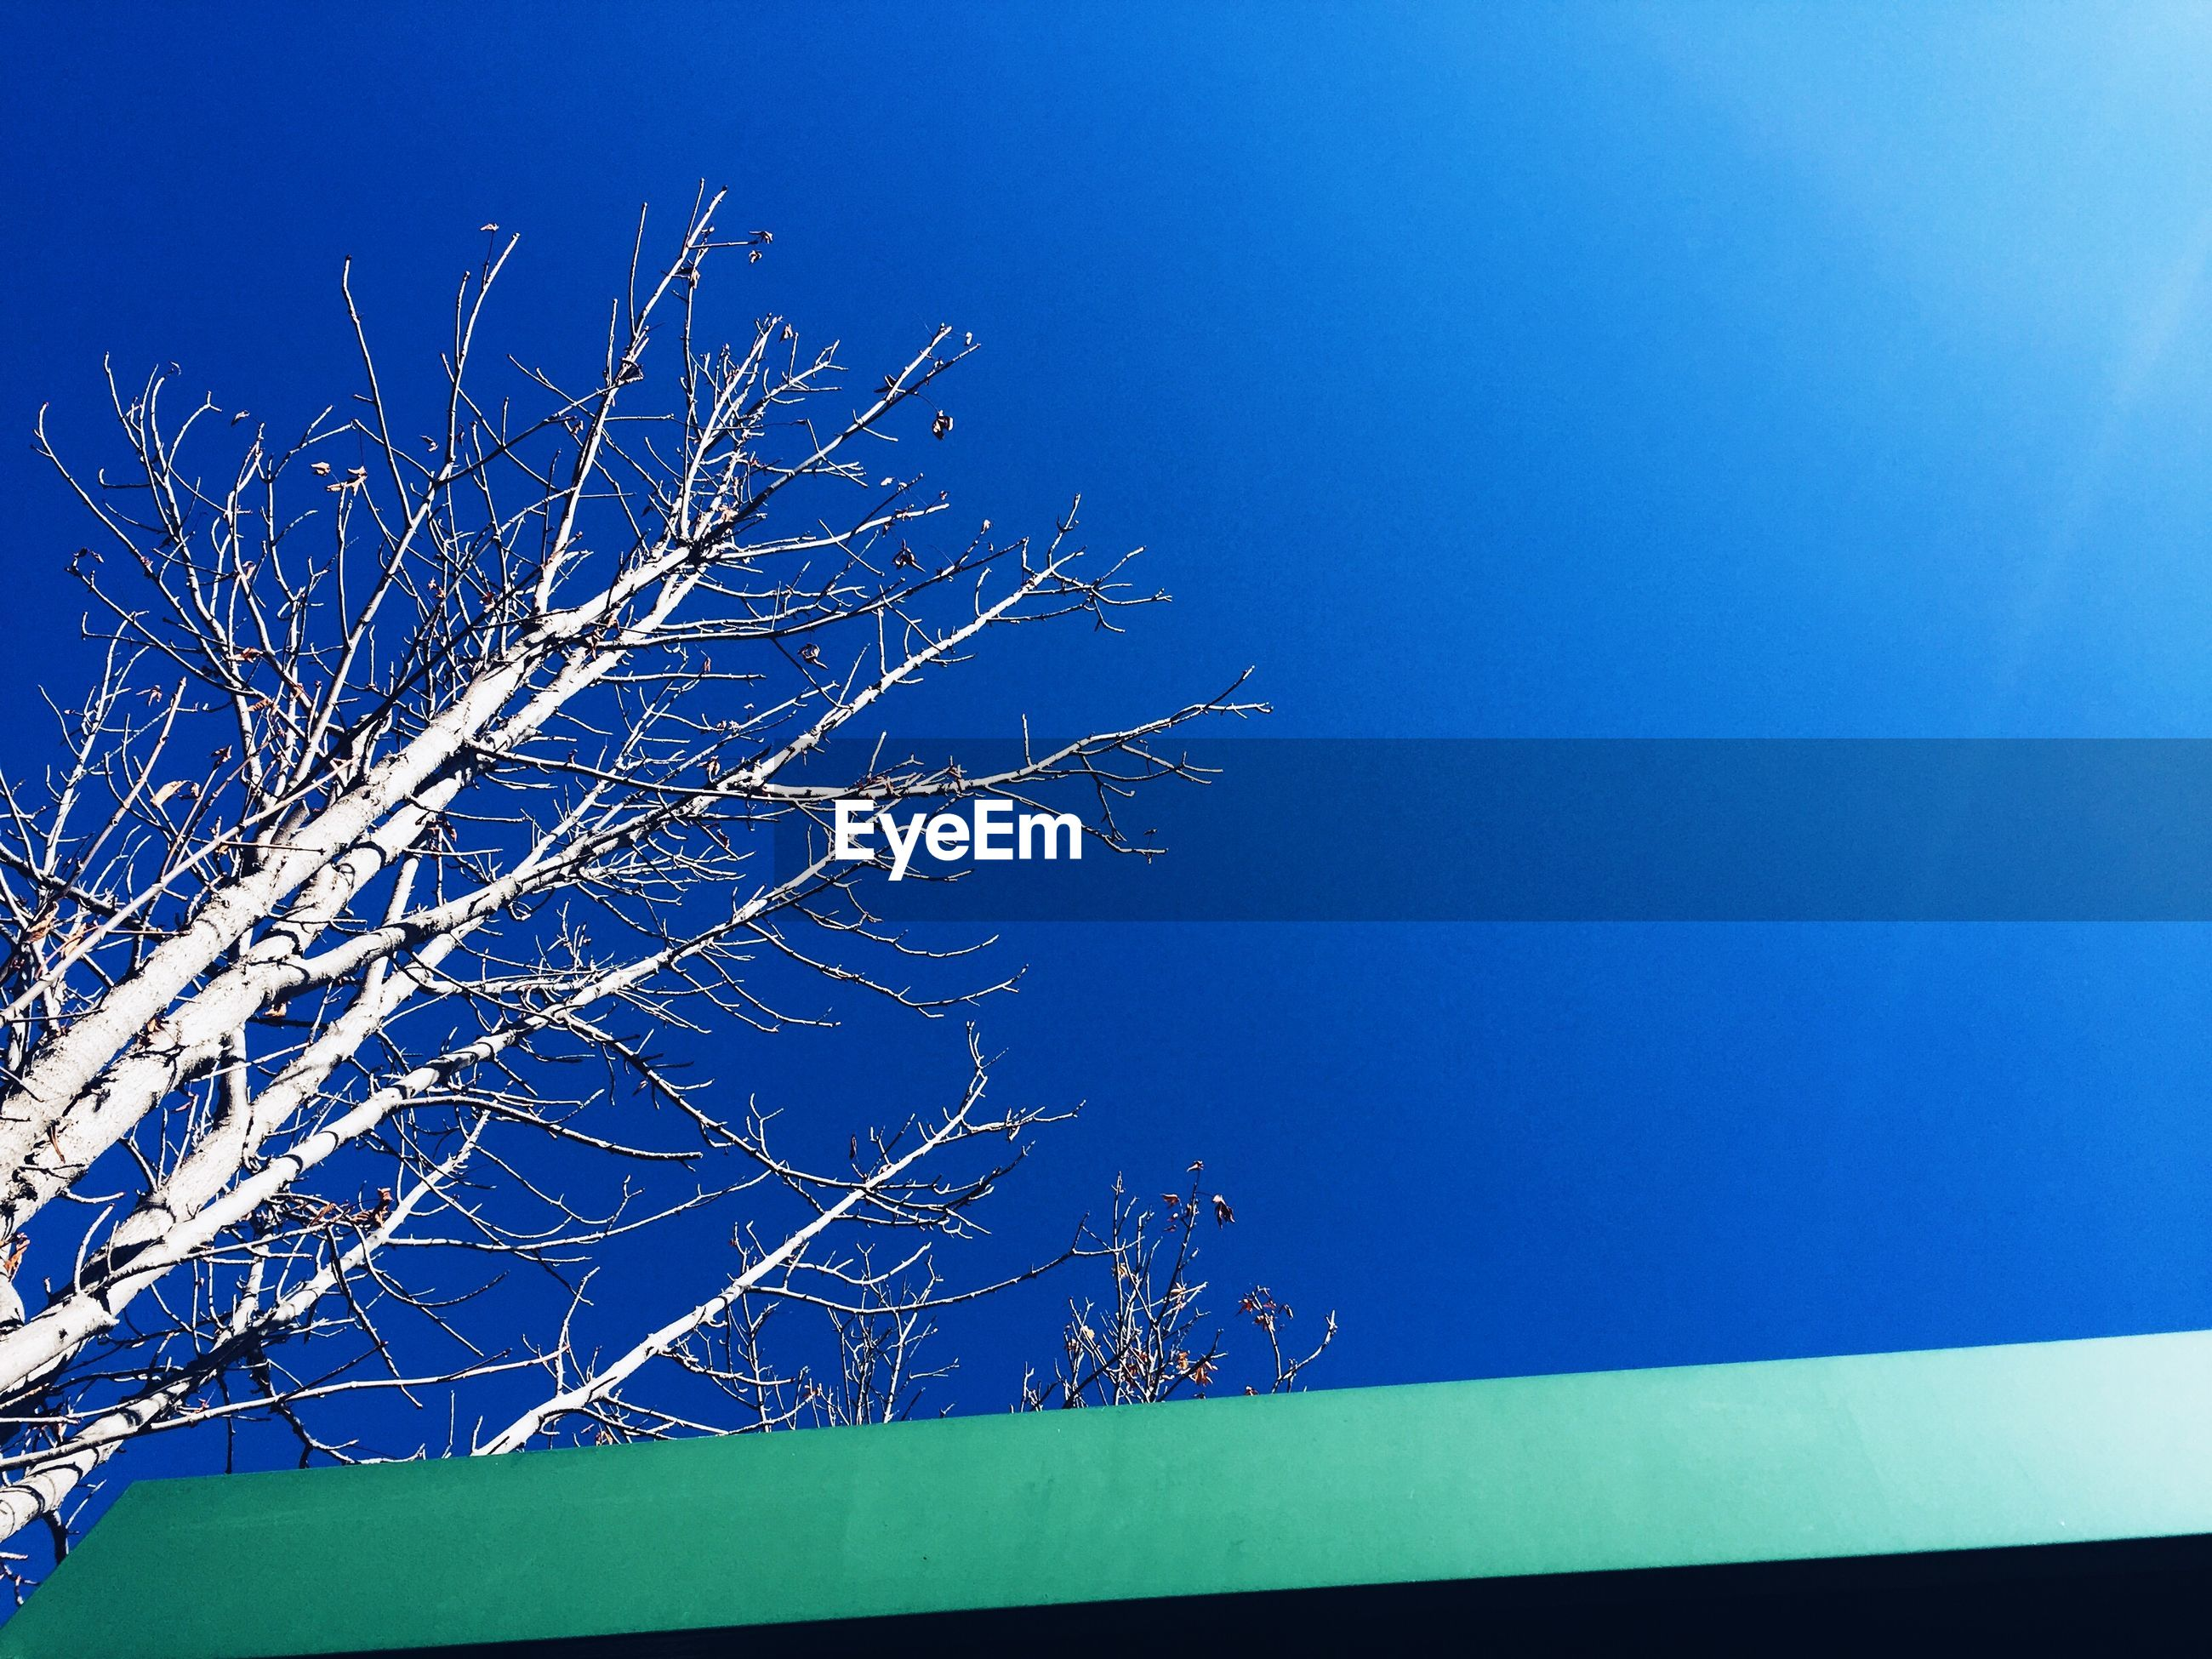 clear sky, low angle view, blue, copy space, night, illuminated, branch, bare tree, tree, nature, outdoors, beauty in nature, sky, no people, built structure, moon, high section, tranquility, growth, dusk